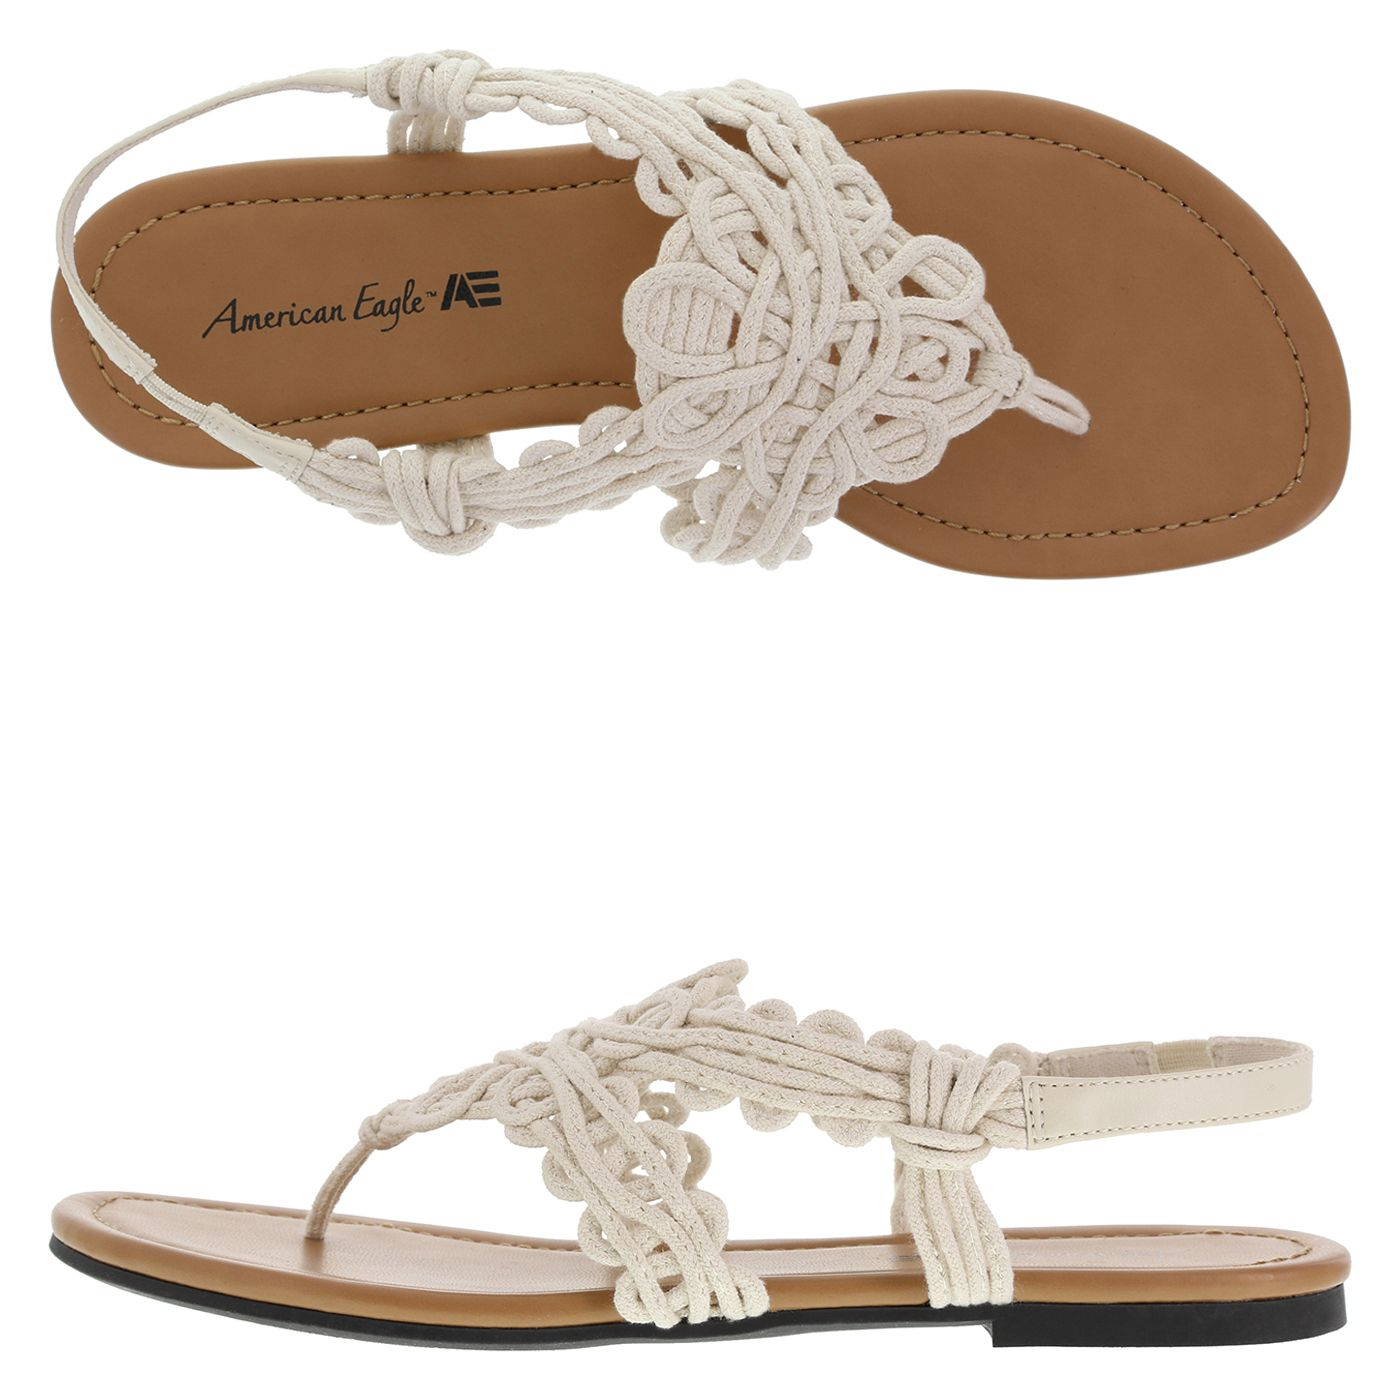 Womens sandals at payless - Womens Shay Crochet Flat Sling Womens Payless Shoes